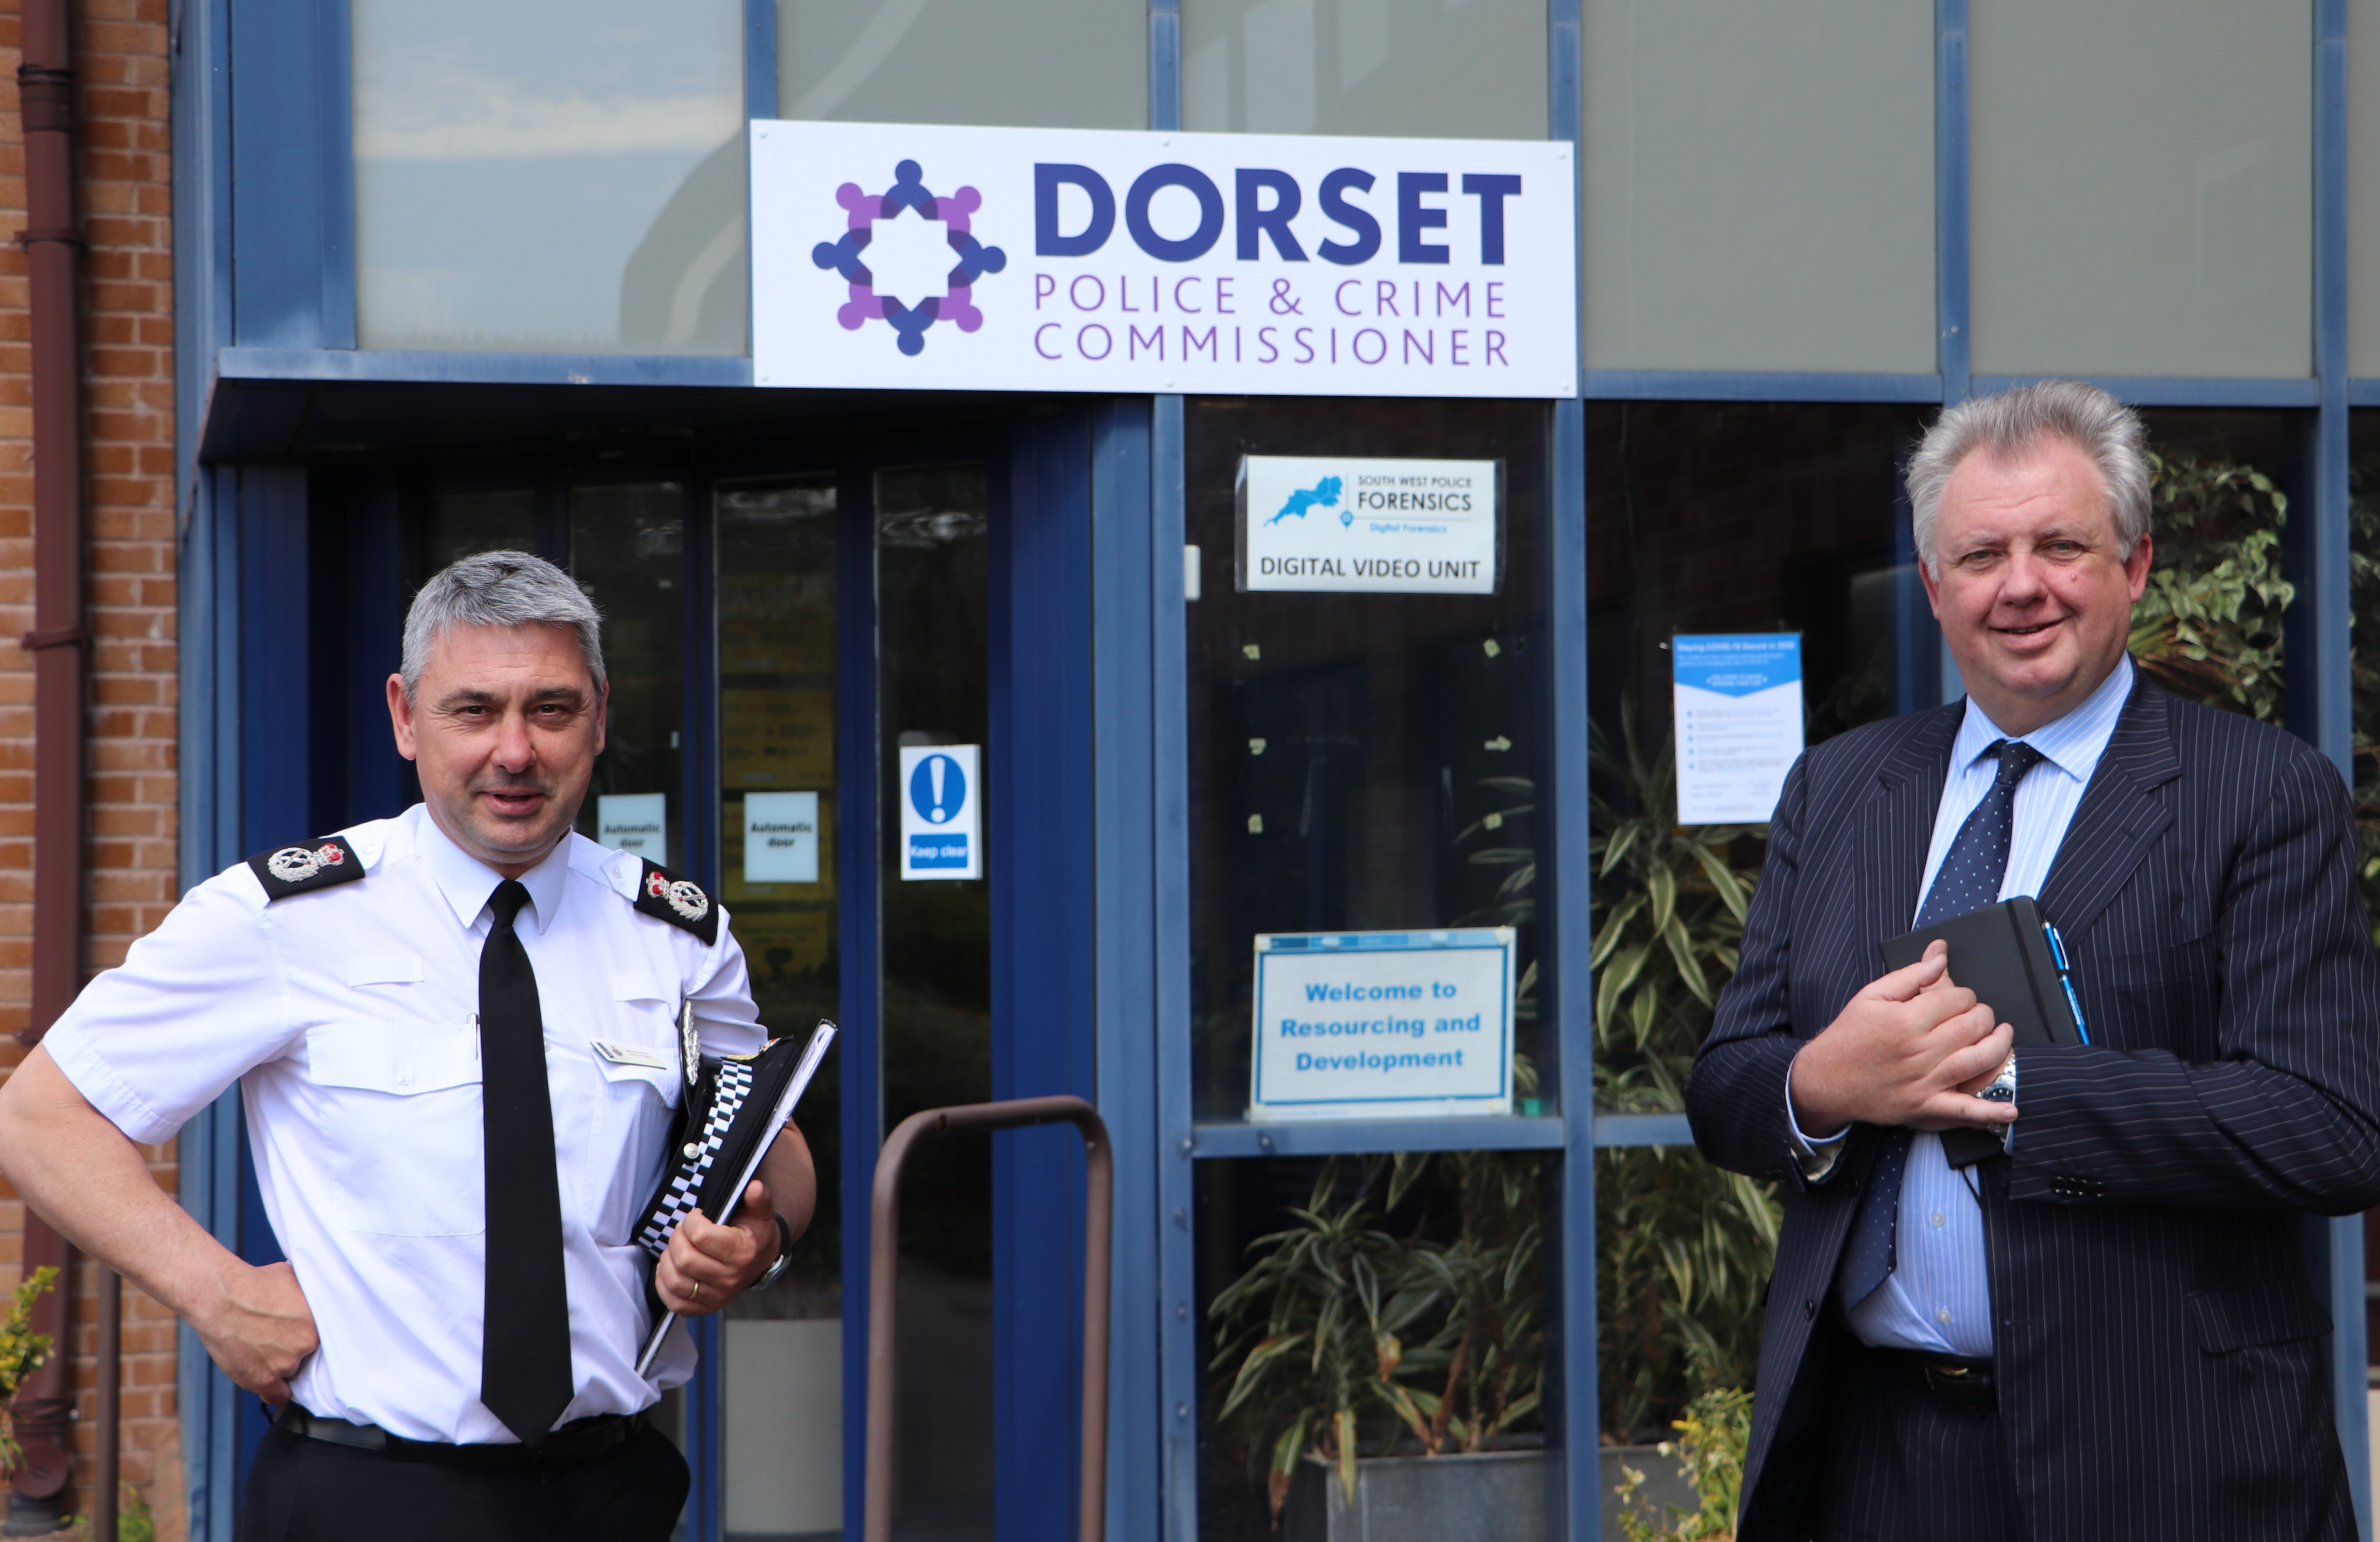 PCC David Sidwick with Chief Constable James Vaughan